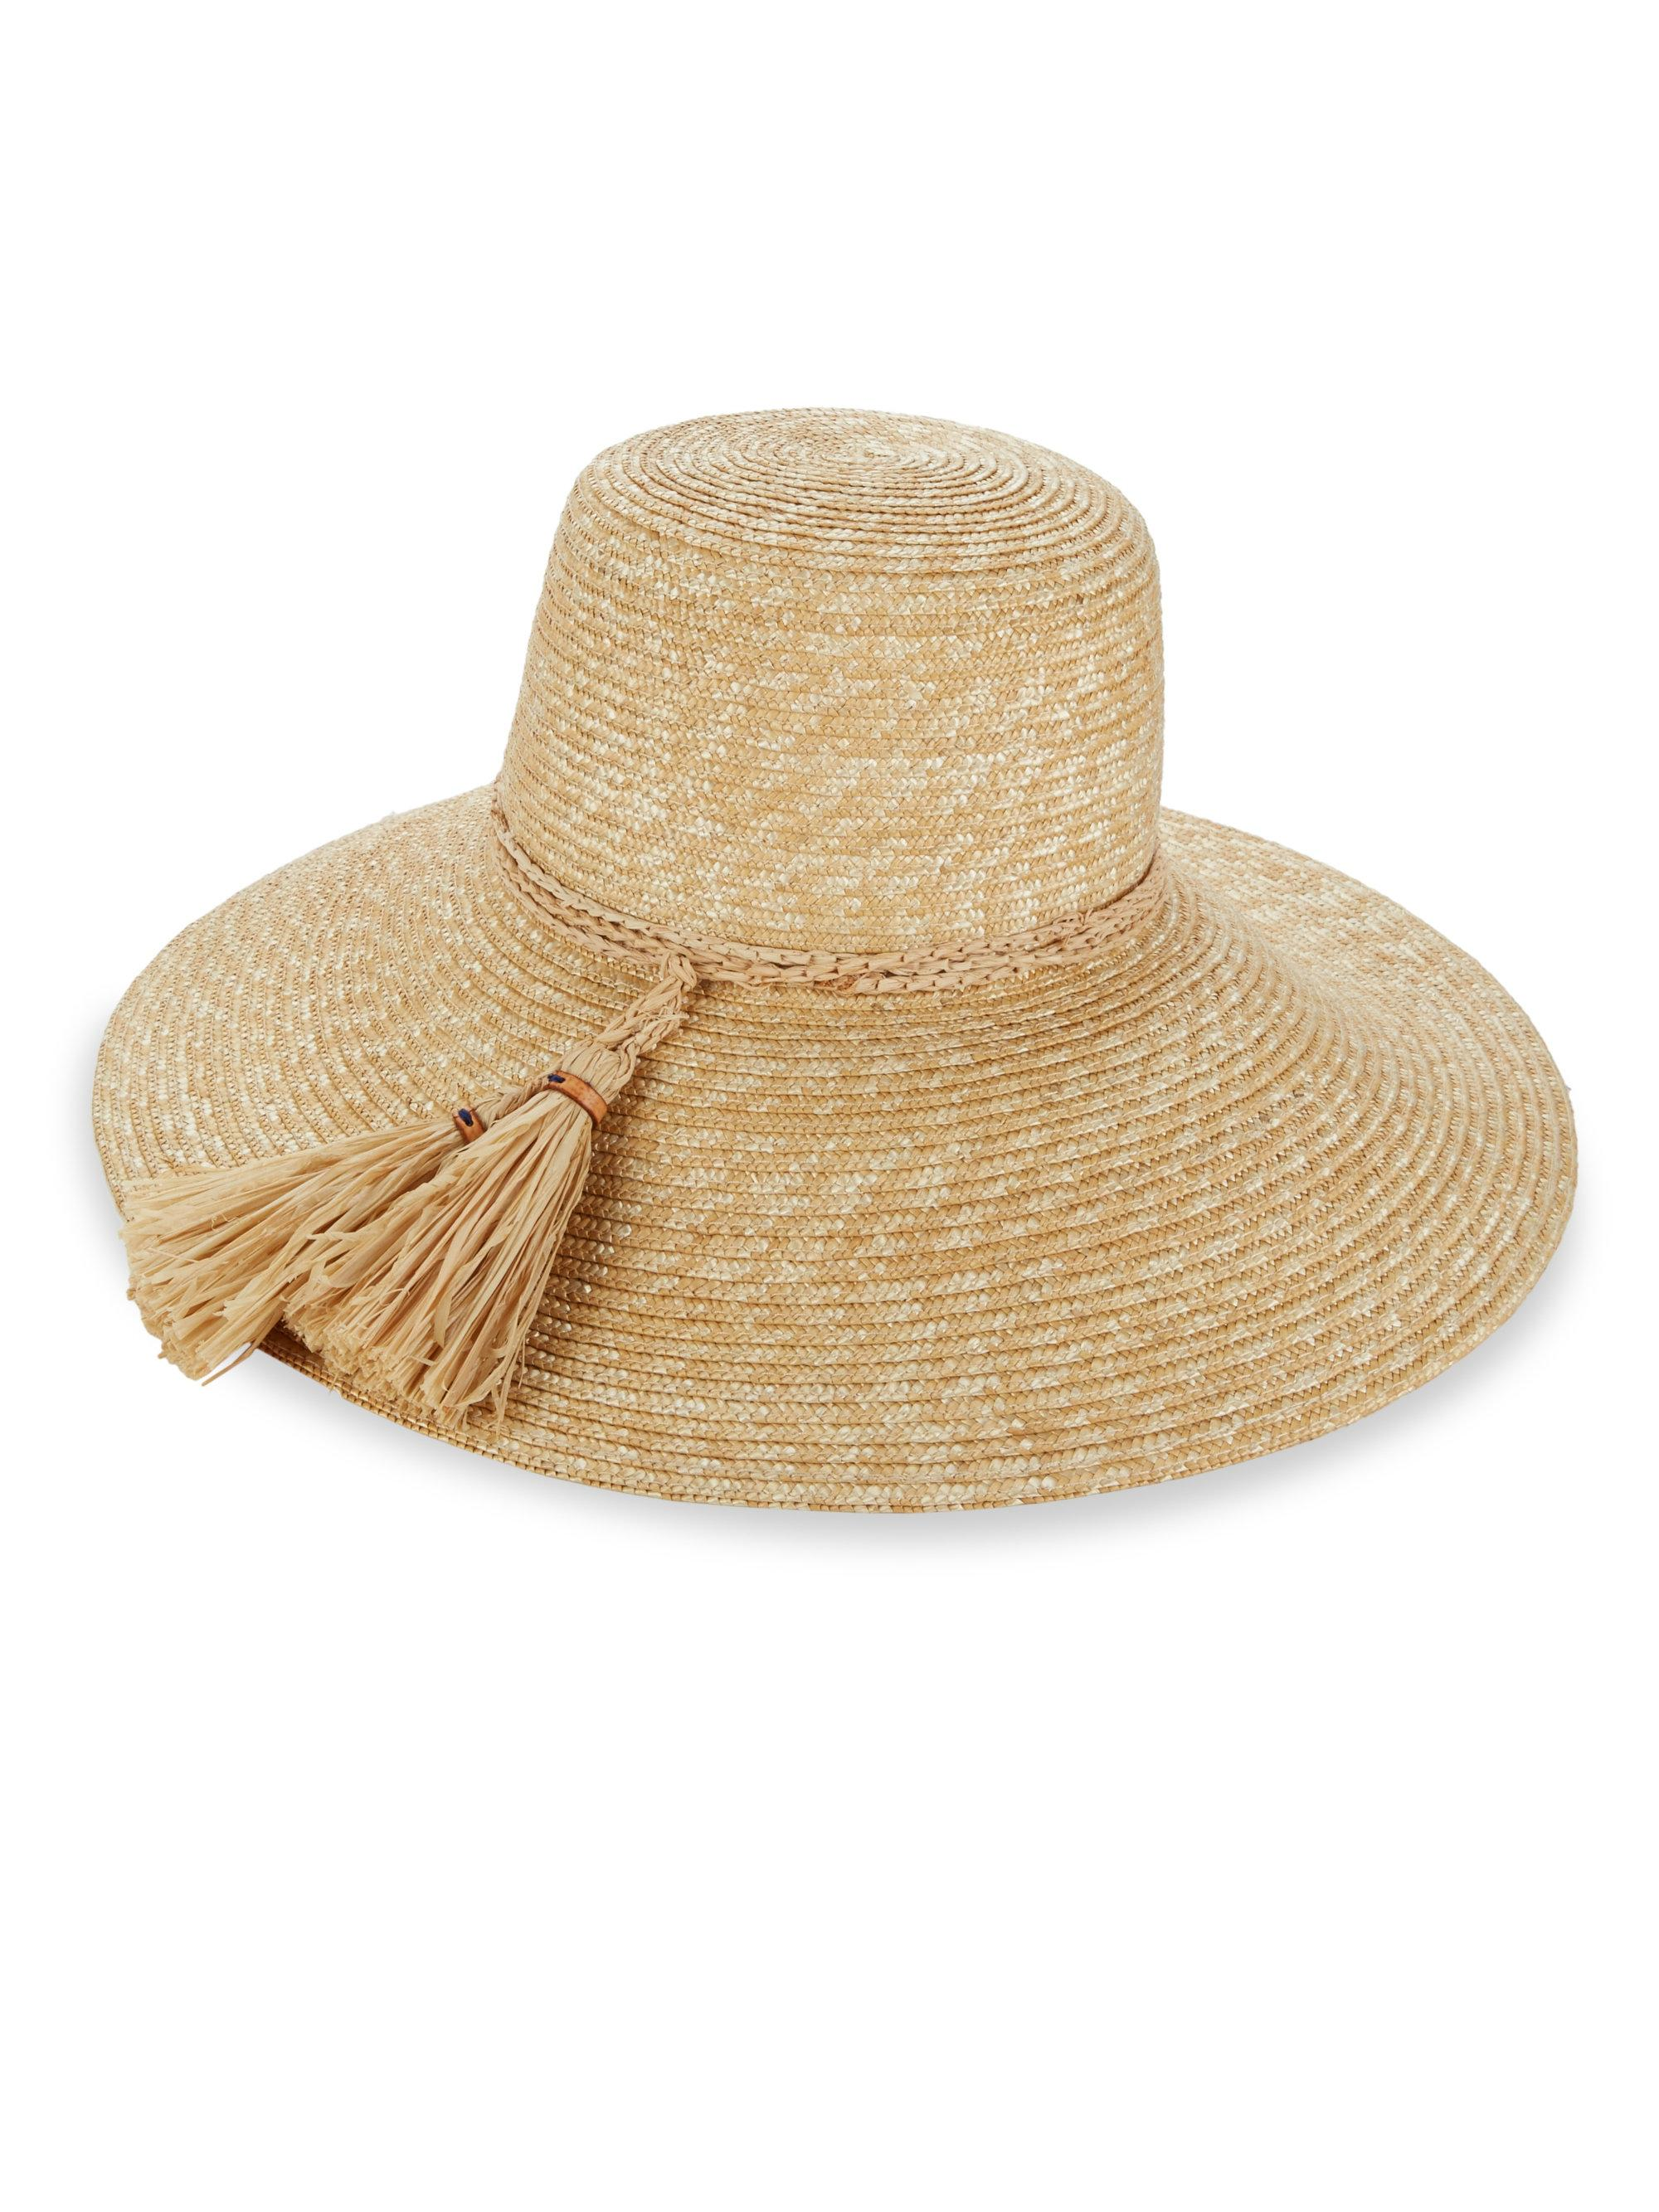 a899a61cd6c Lyst - Lola Hats Rope Swing Natural Raffia Sun Hat in Natural